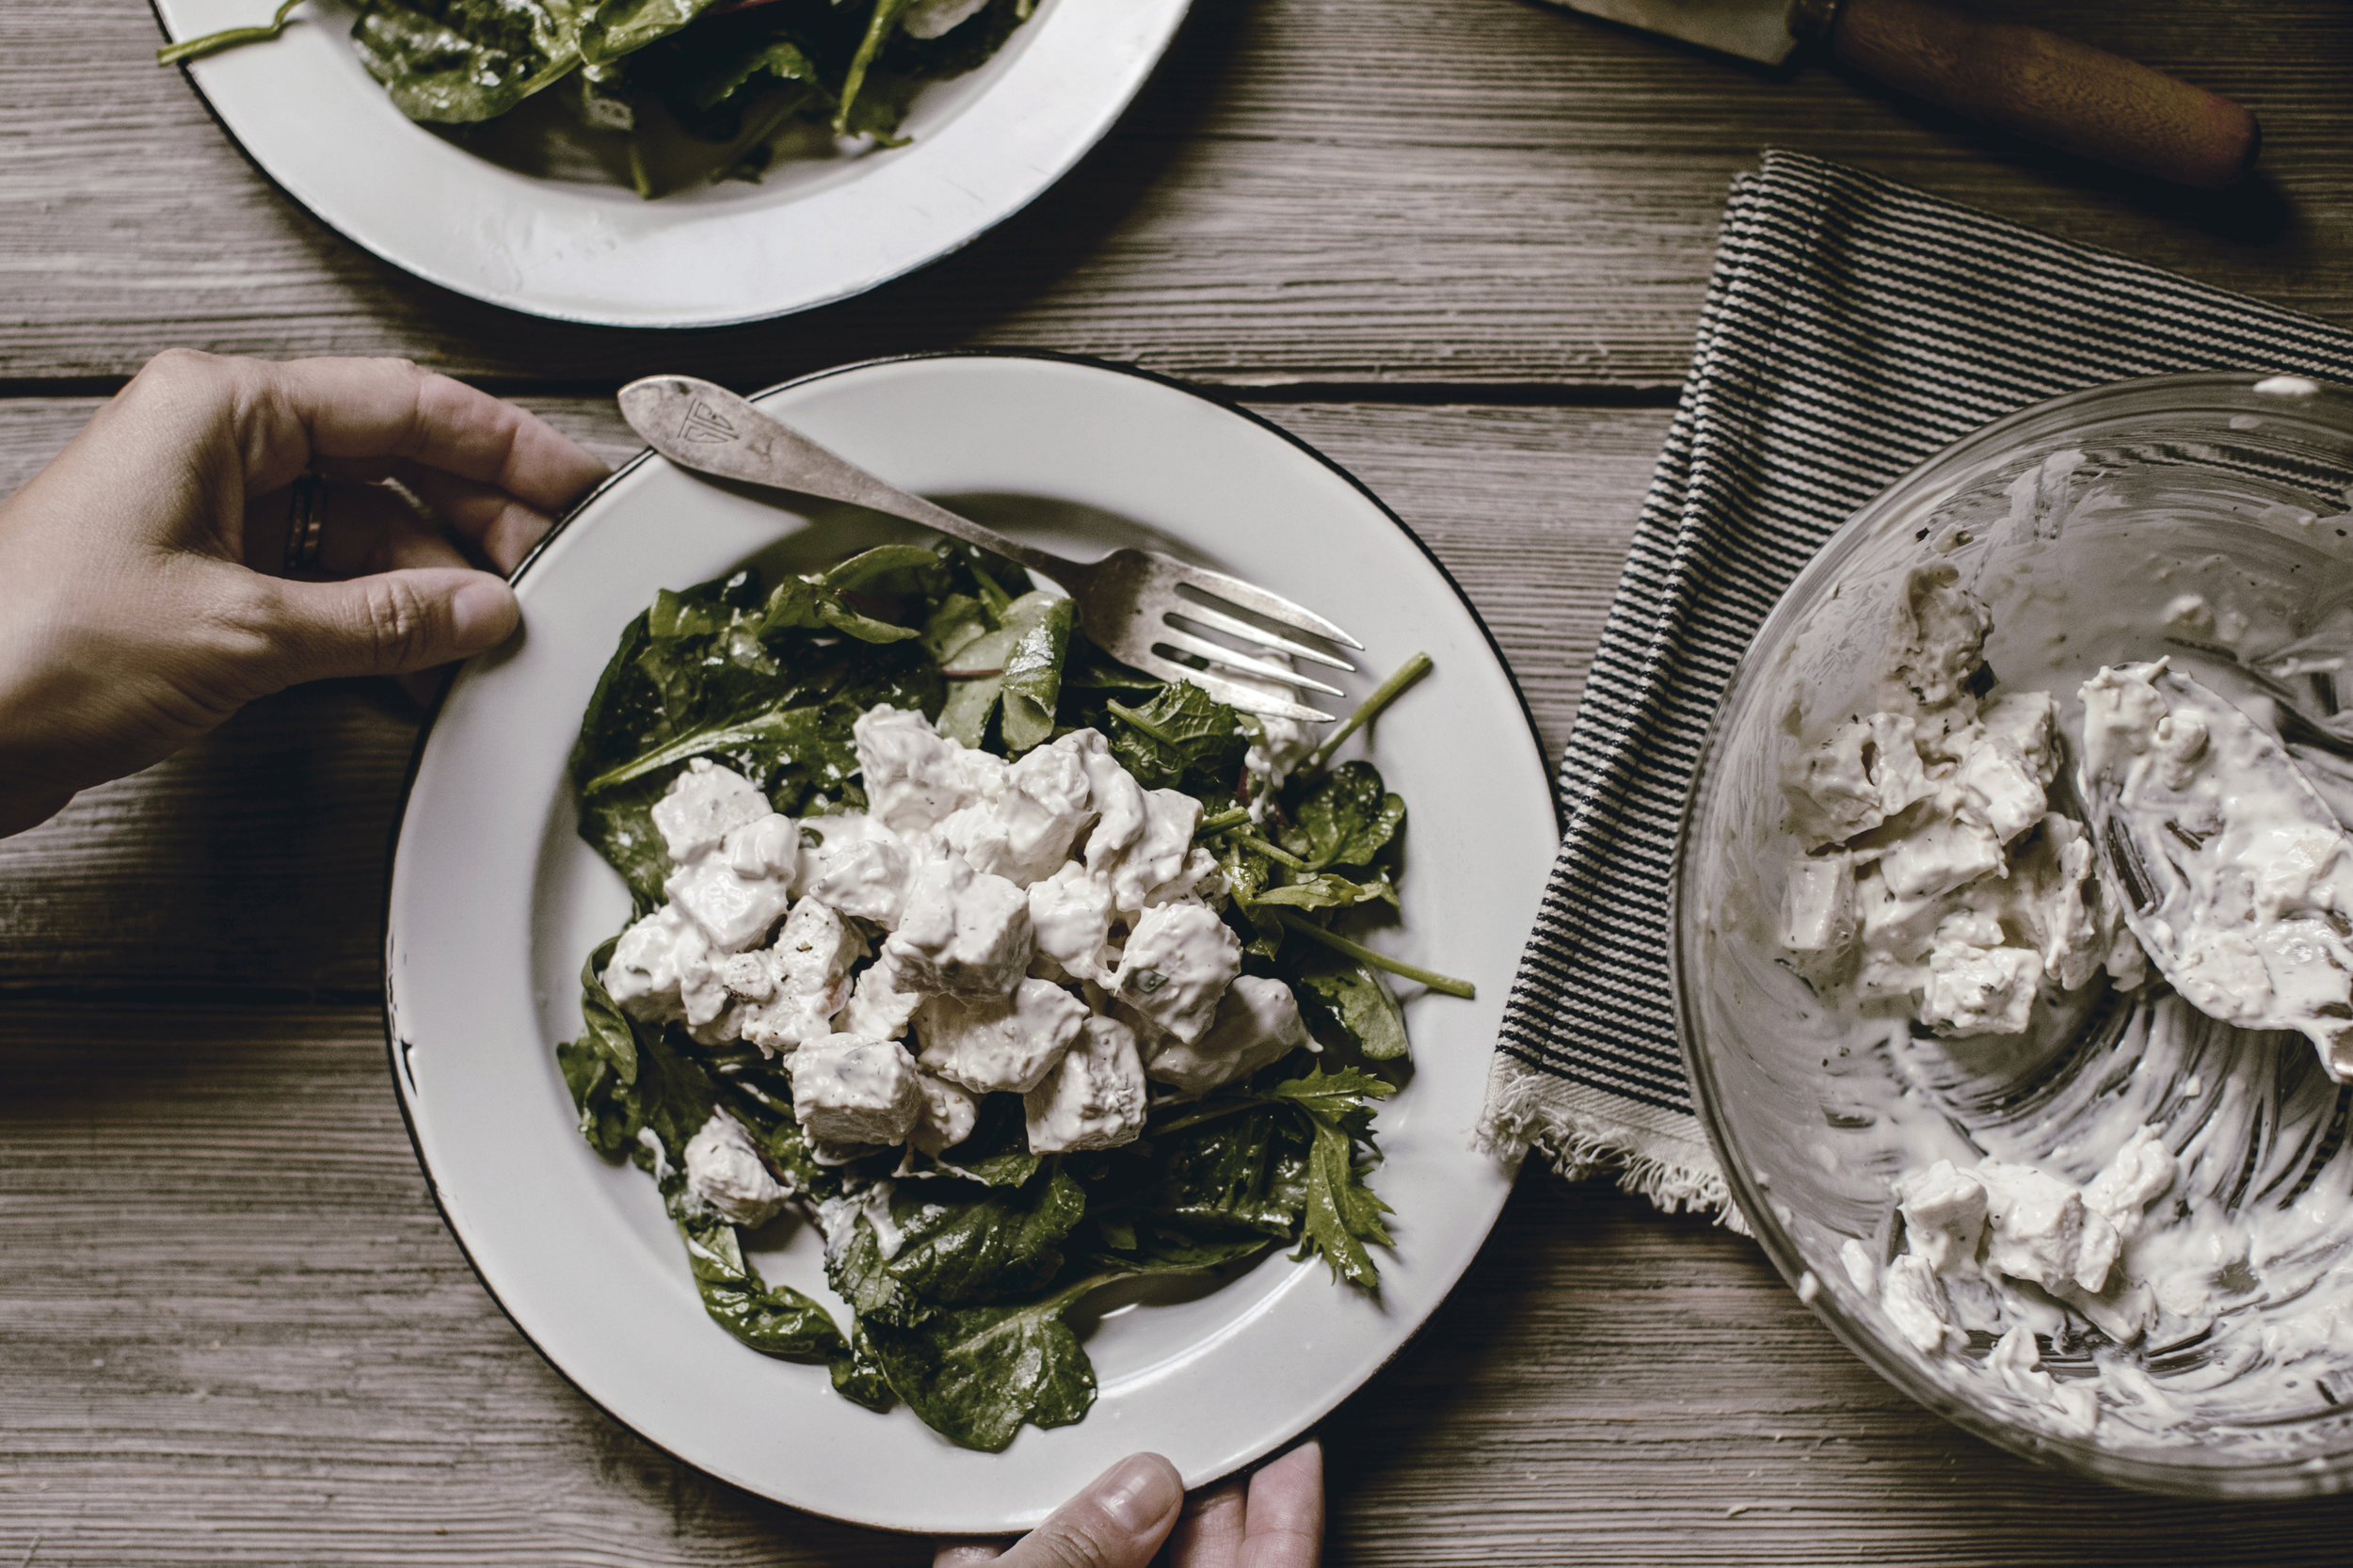 best savory chicken salad recipe with tarragon and slivered almonds / heirloomed